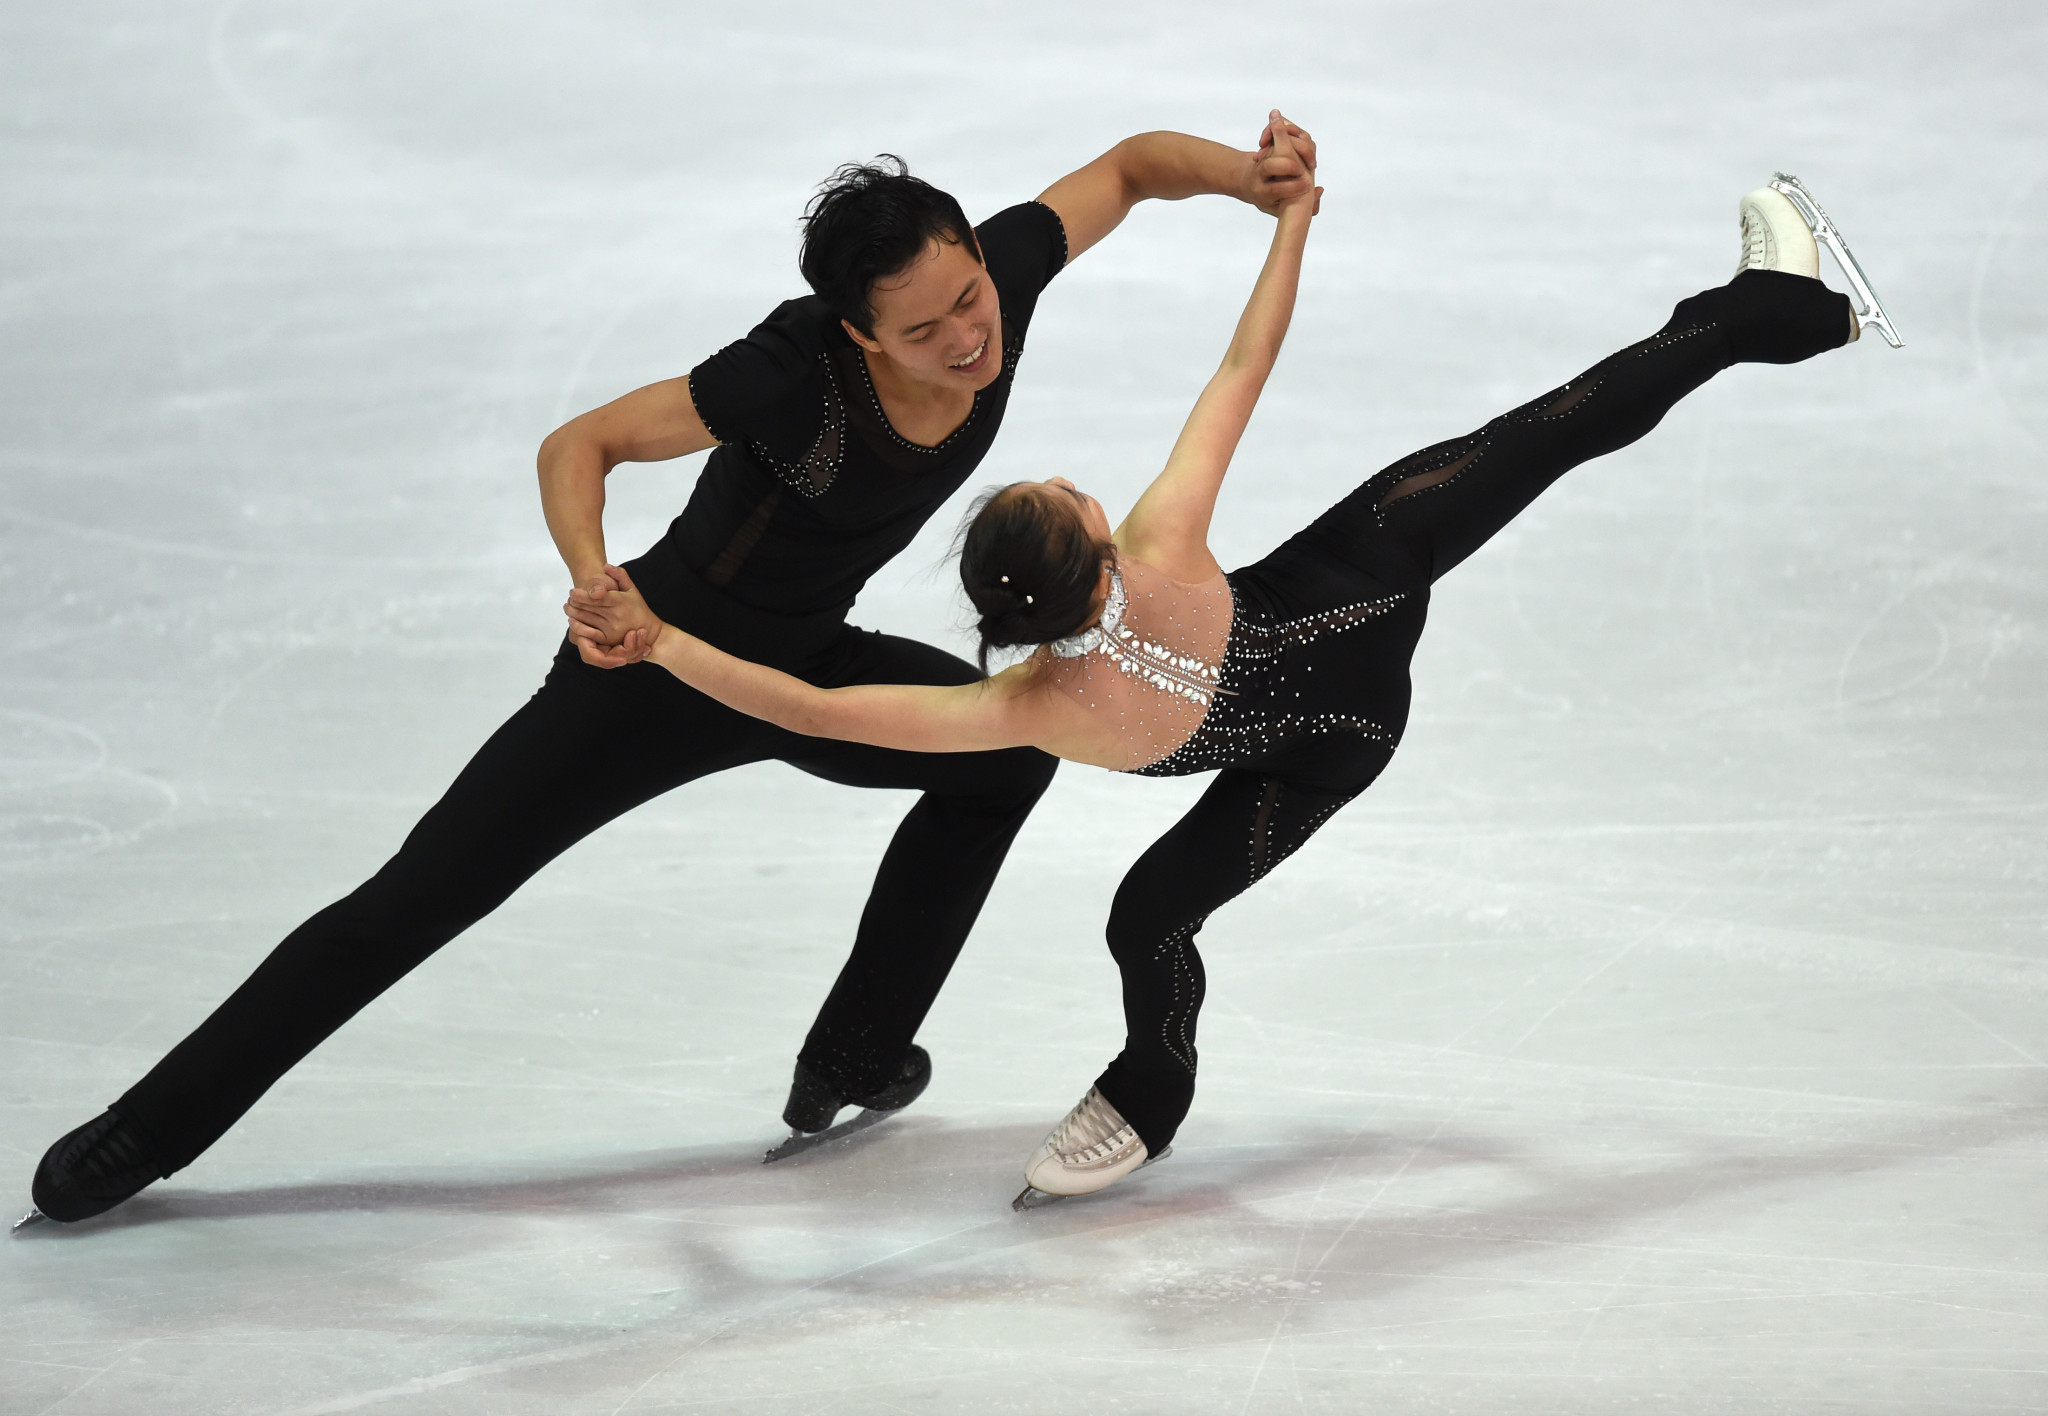 Pairs skaters Ryom Tae-Ok and Kim Ju-Sik could compete at Pyeongchang 2018 ©Getty Images